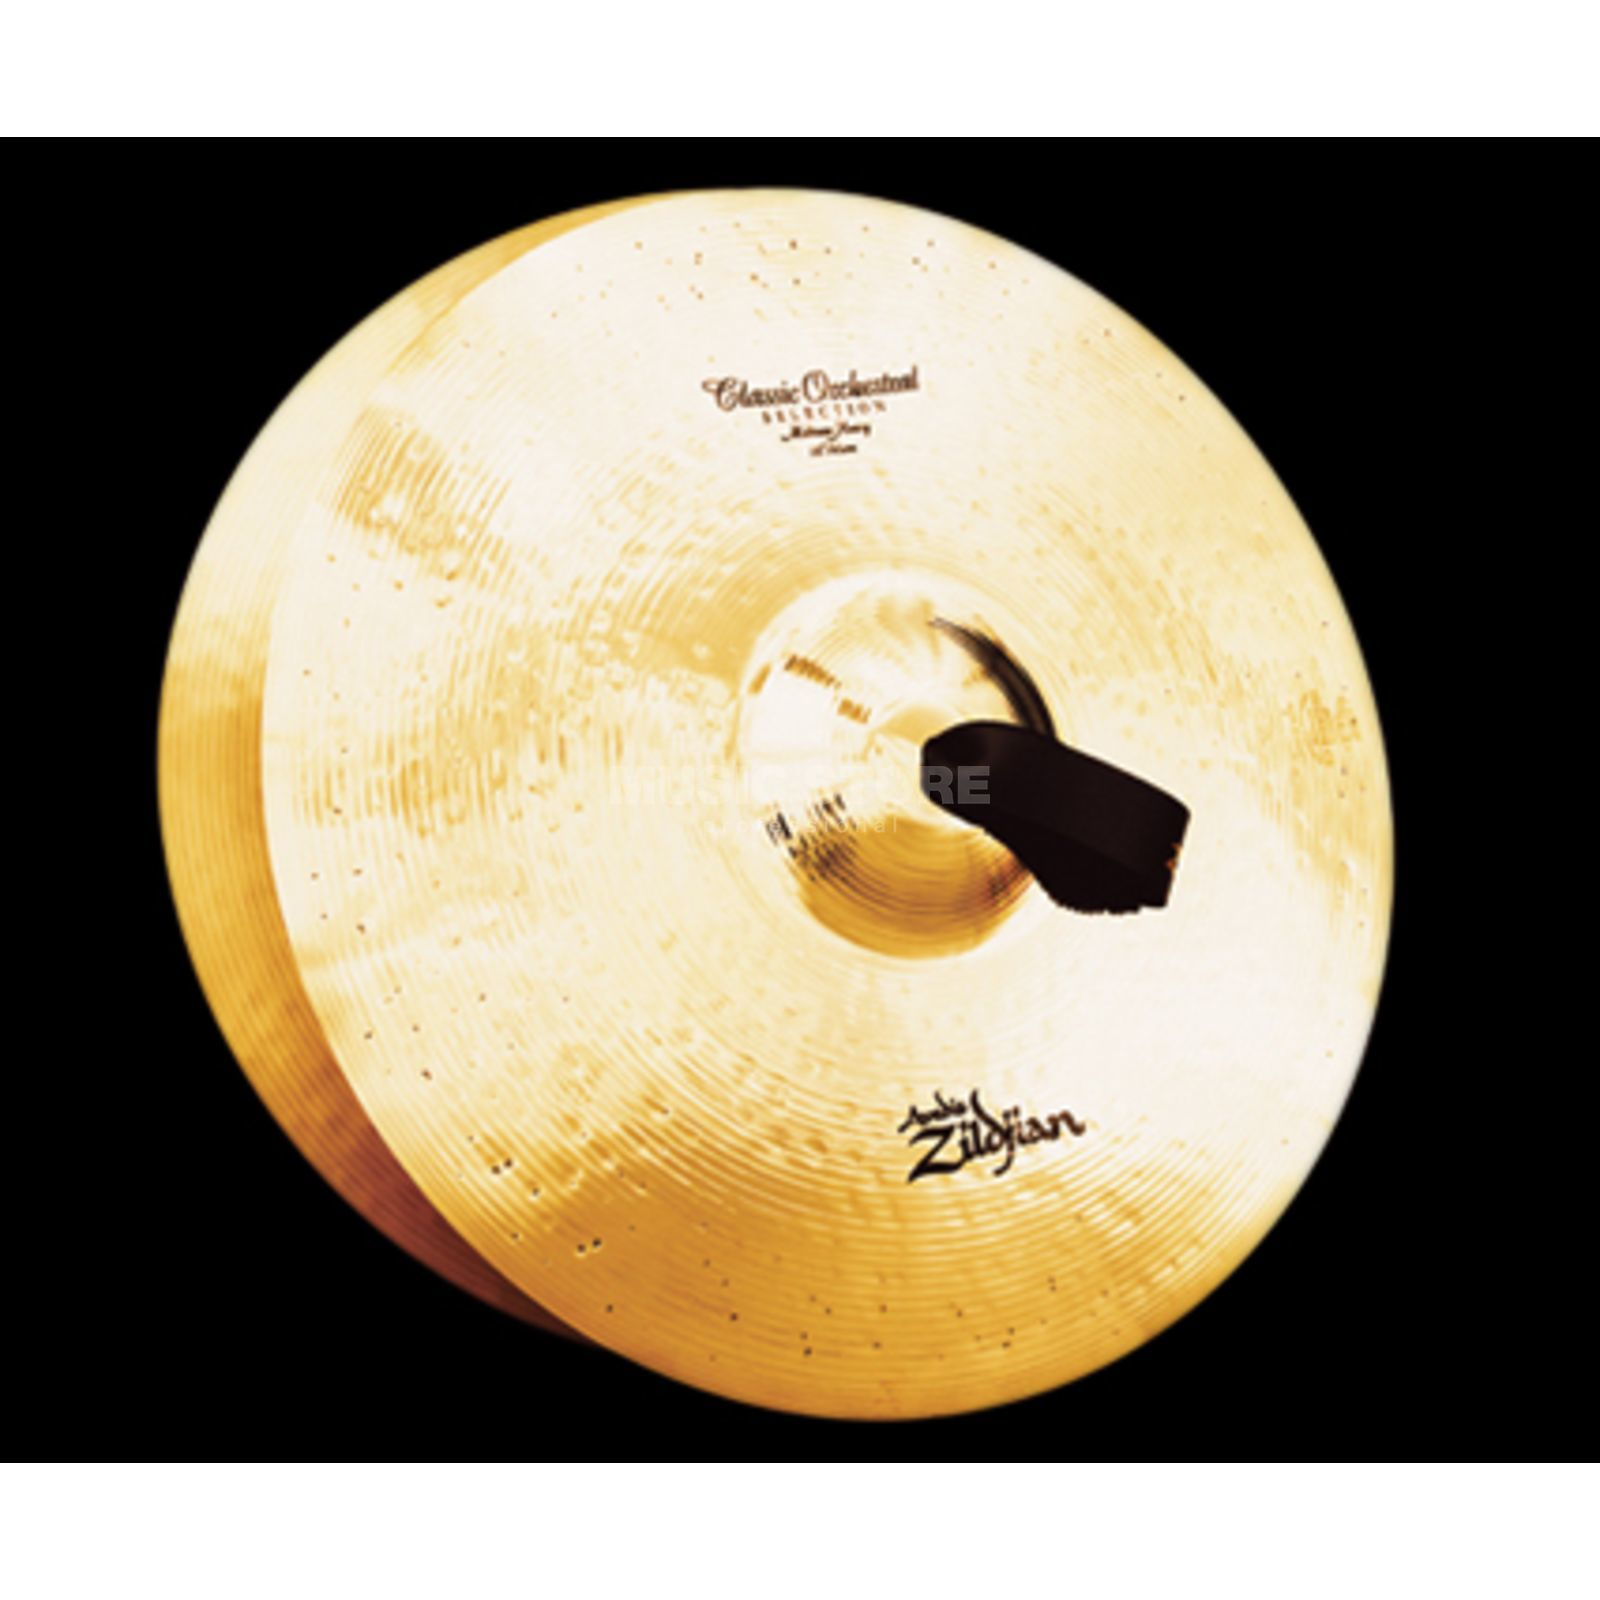 "Zildjian Classic Orchestra Cymbals 18"", Medium Heavy Product Image"